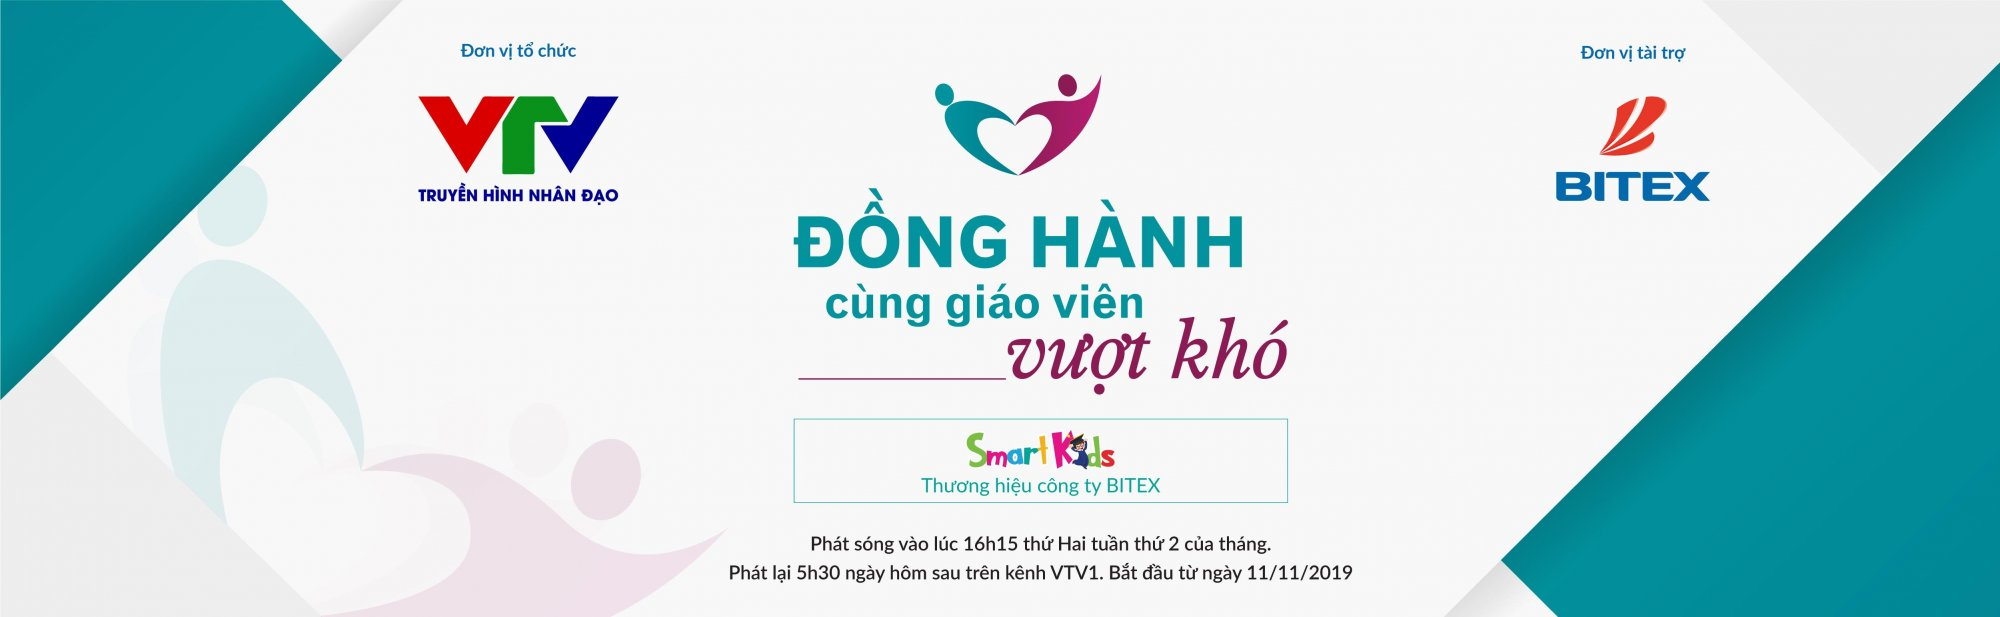 dong hanh cung giao vien